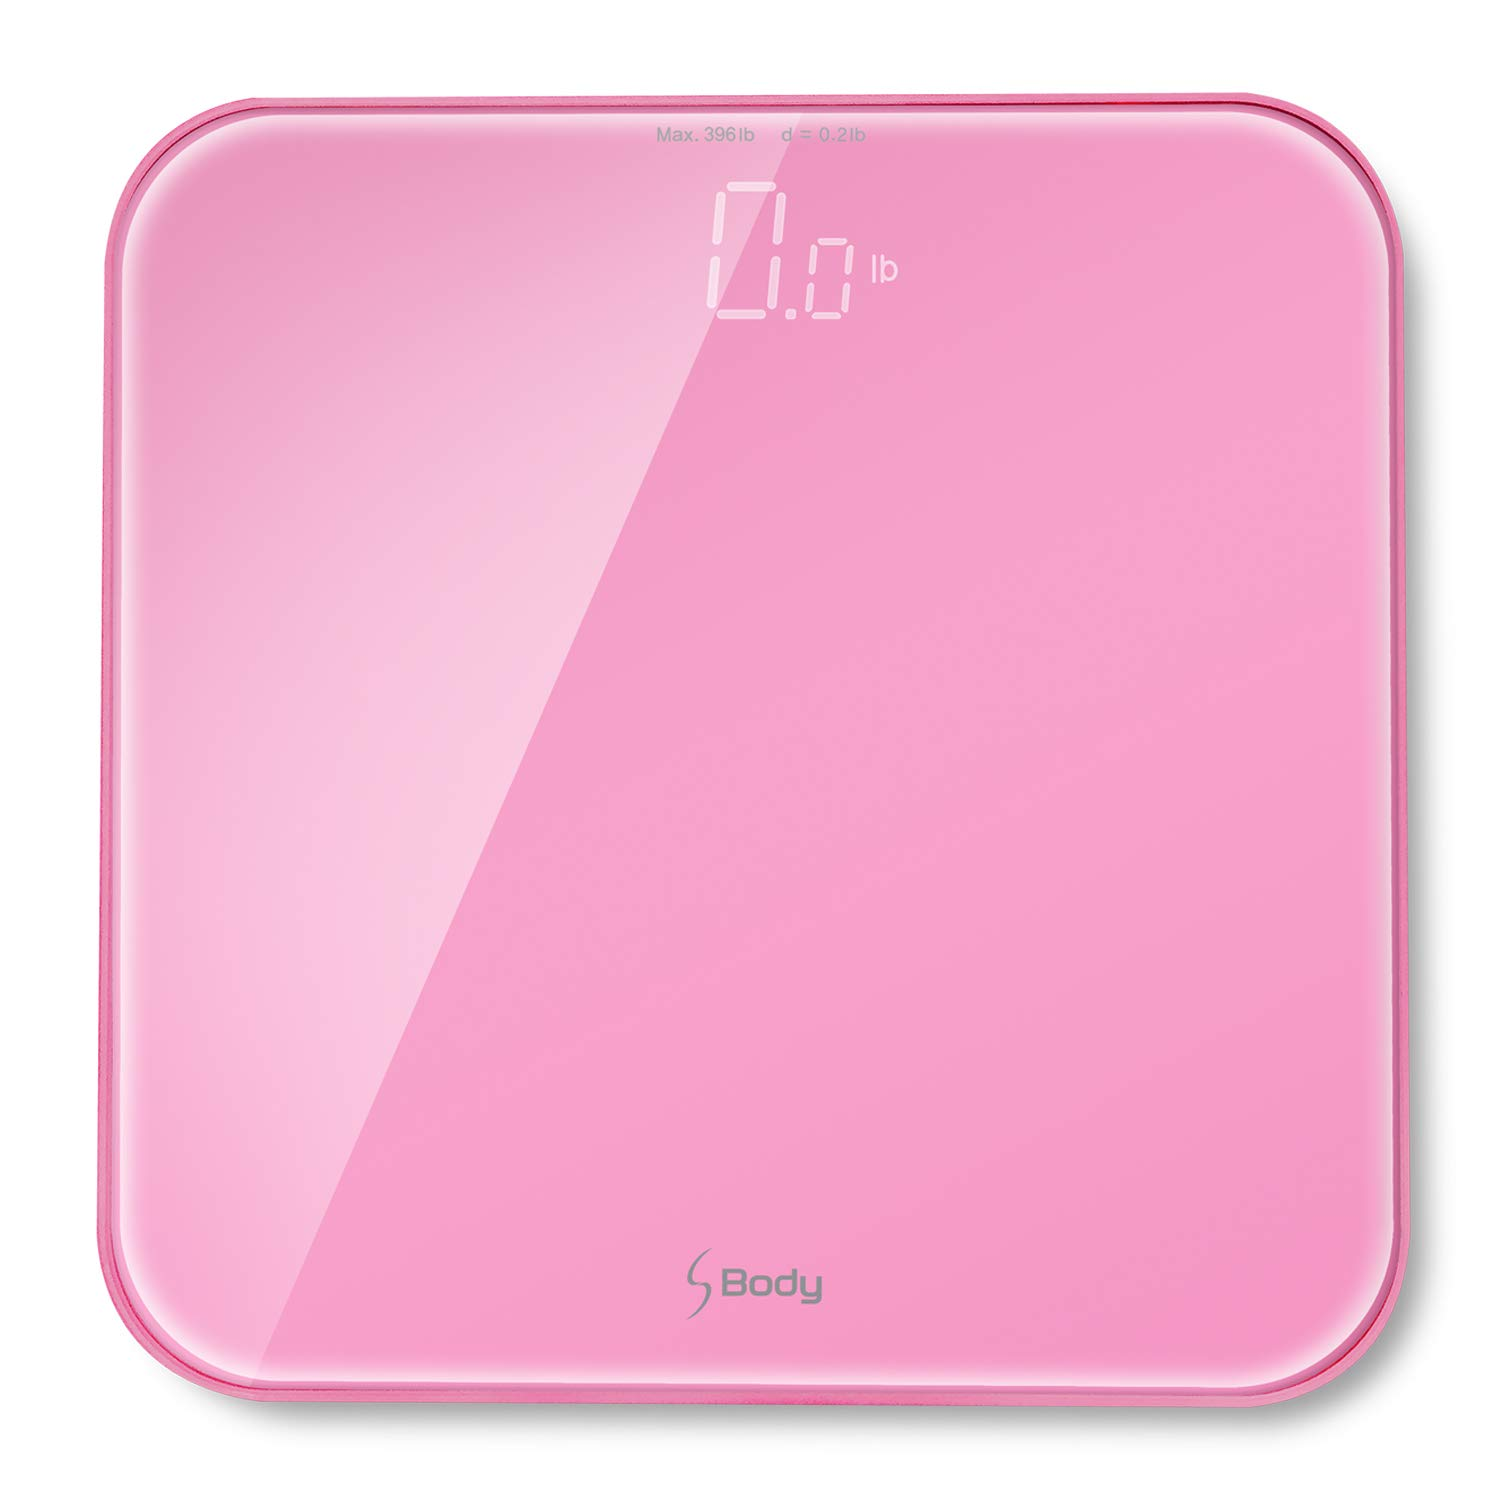 S Body High Precision Ultra Wide Digital Body Weight Bathroom Scale up to 396lb/180kg, Super-Clear Large LED Display,''Step-On'' Technology, Pink